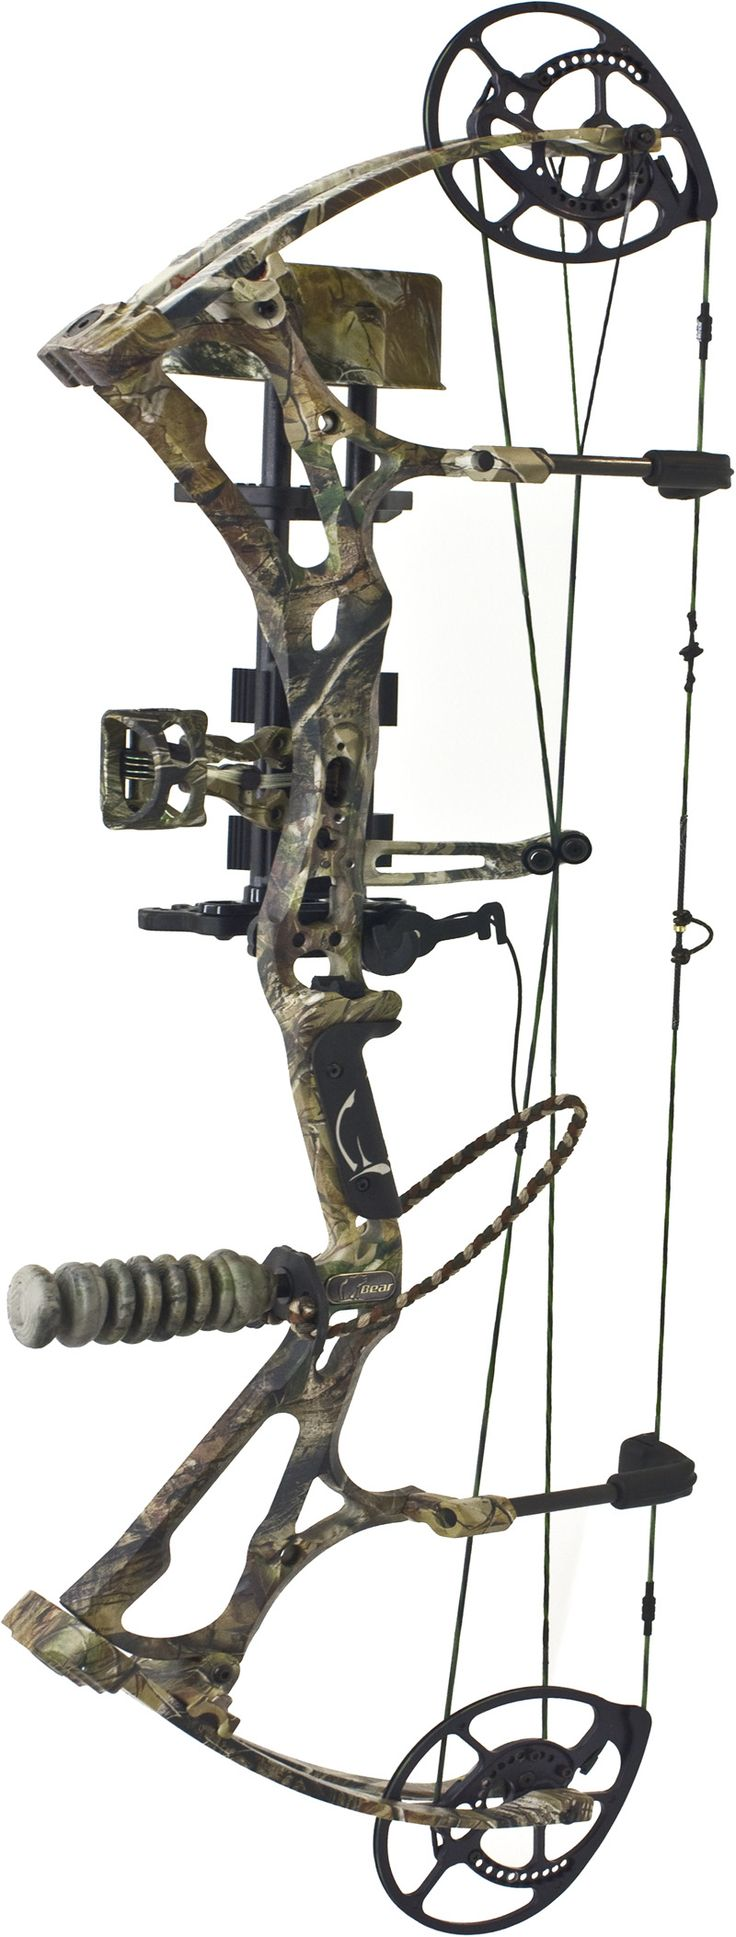 Bow hunting chair - 2013 Bear Motive 6 A True 350 Fps Killer Complete Bowhunting Package Deal